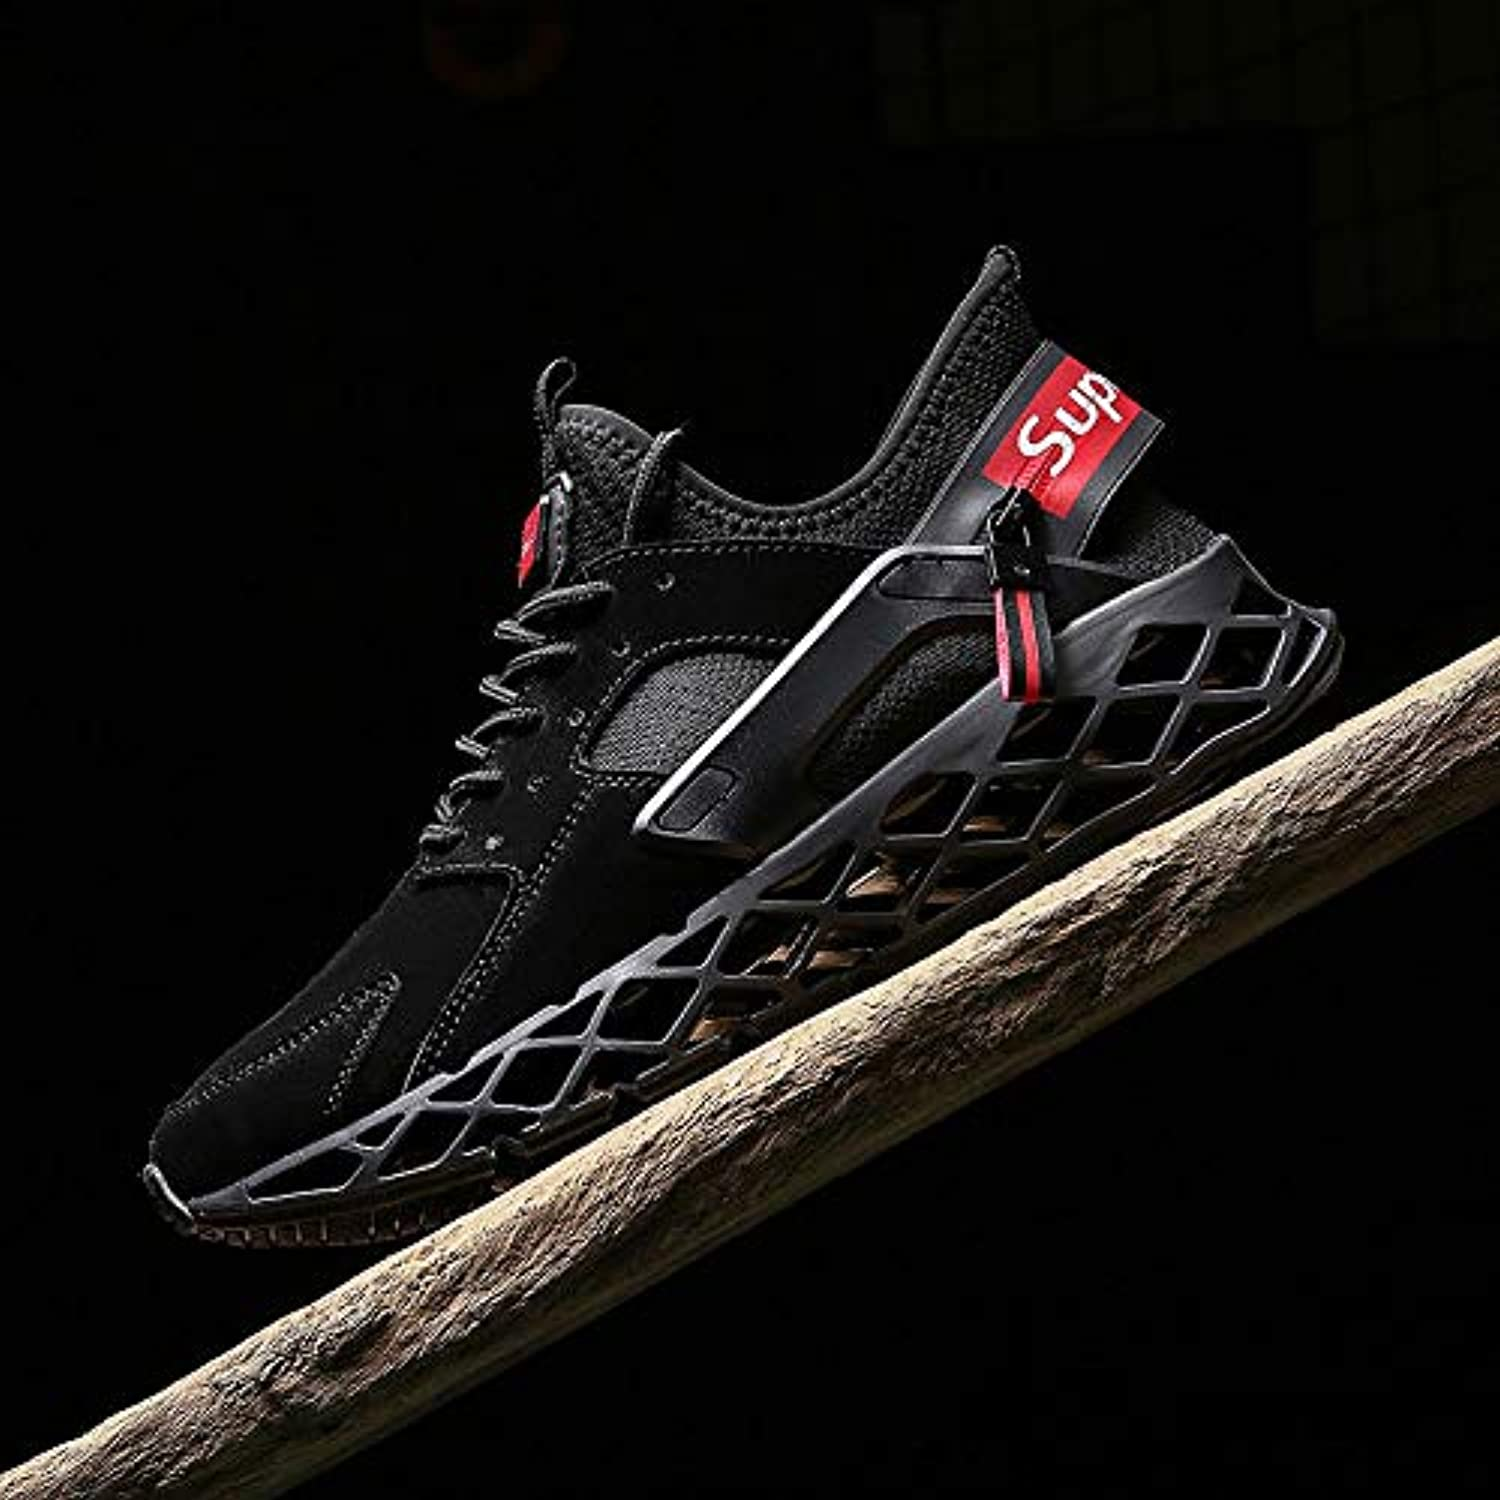 Liuxc sports shoes Sports running shoes, men's shoes, autumn shoes, high-top sports, comfortable and casual shoes